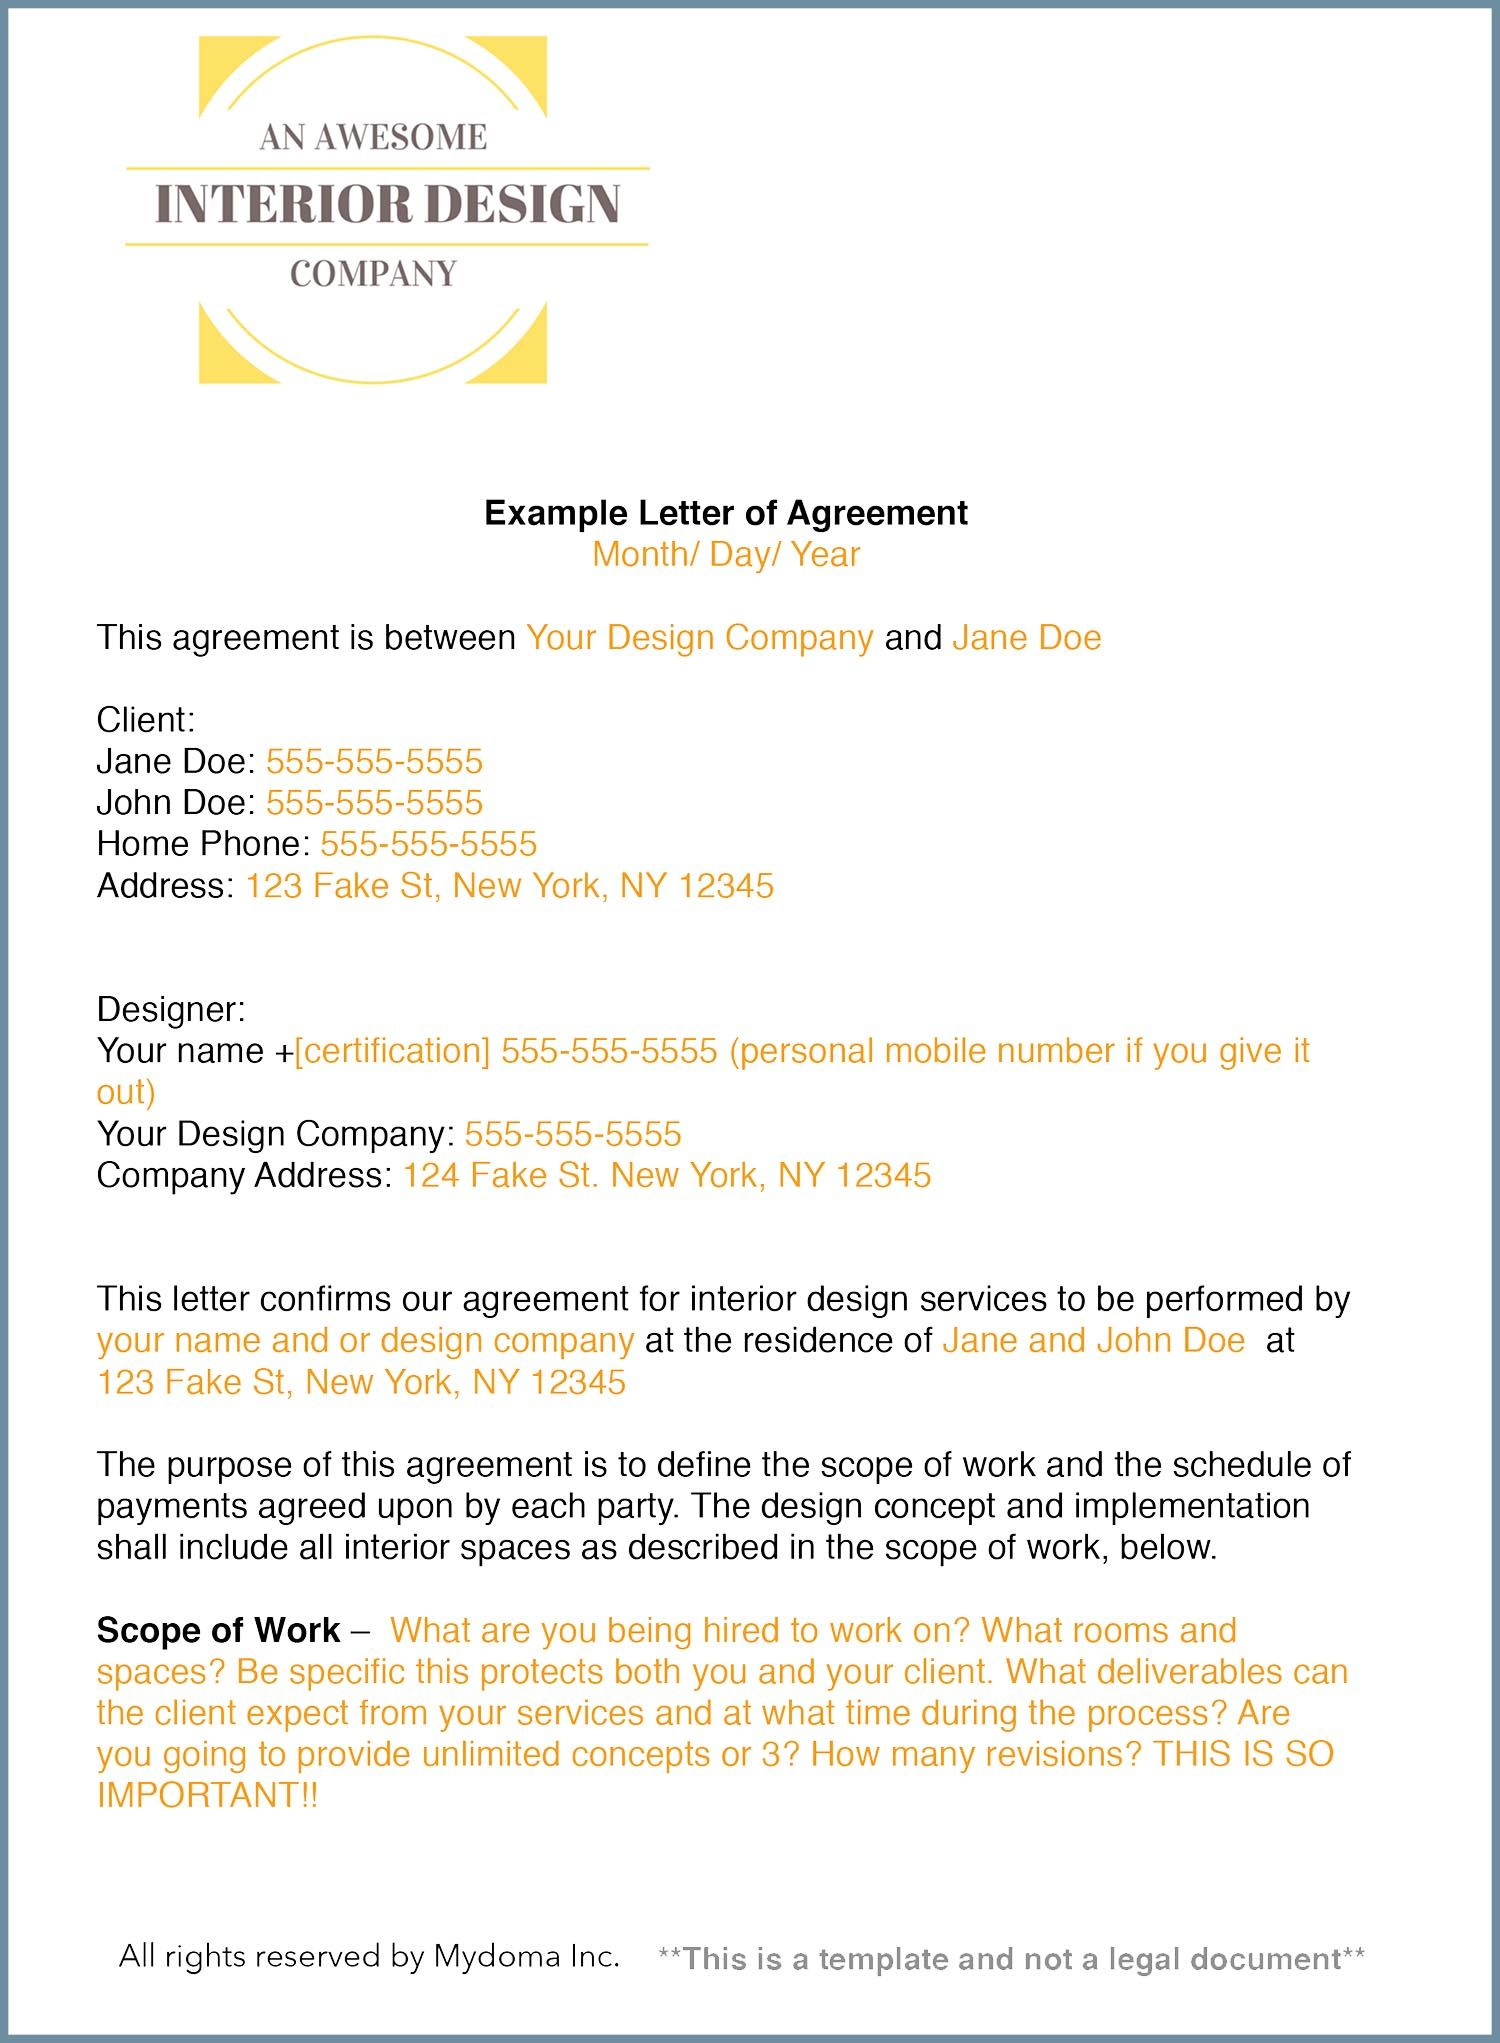 How To Write An Interior Design Letter Of Agreement Or Interior